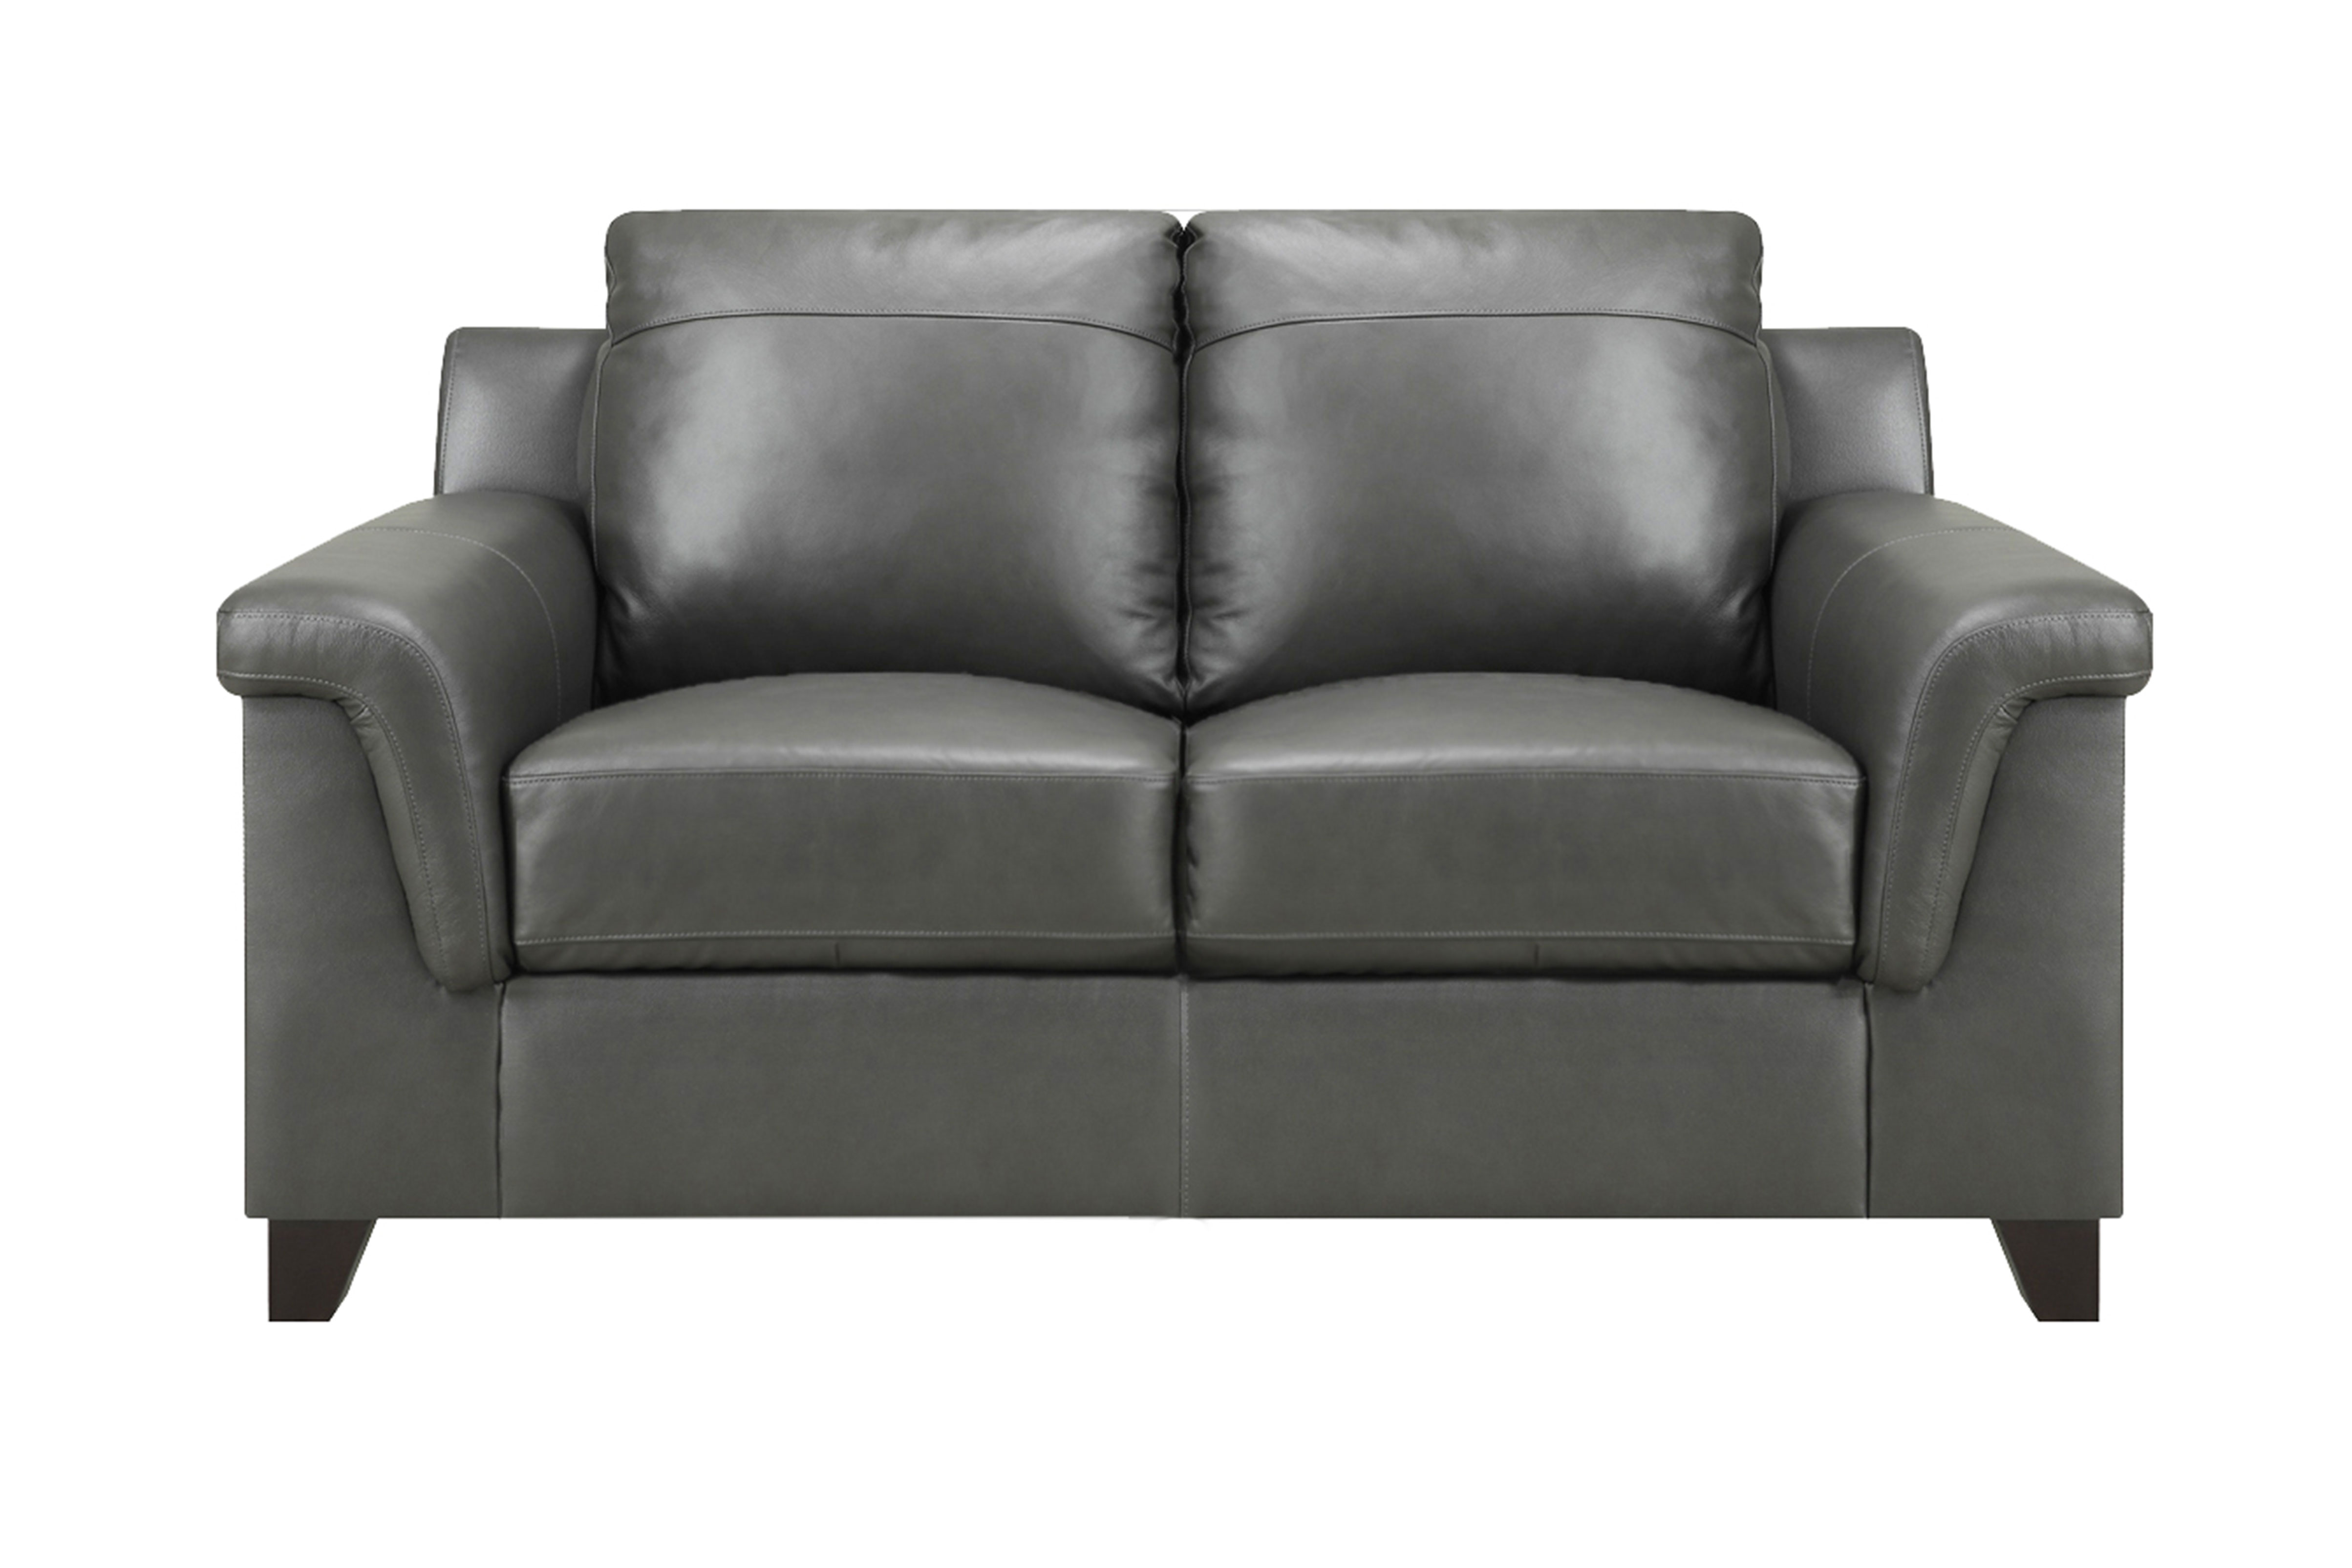 Super Sienna All Leather Sofa Sofas And Sectionals Ocoug Best Dining Table And Chair Ideas Images Ocougorg